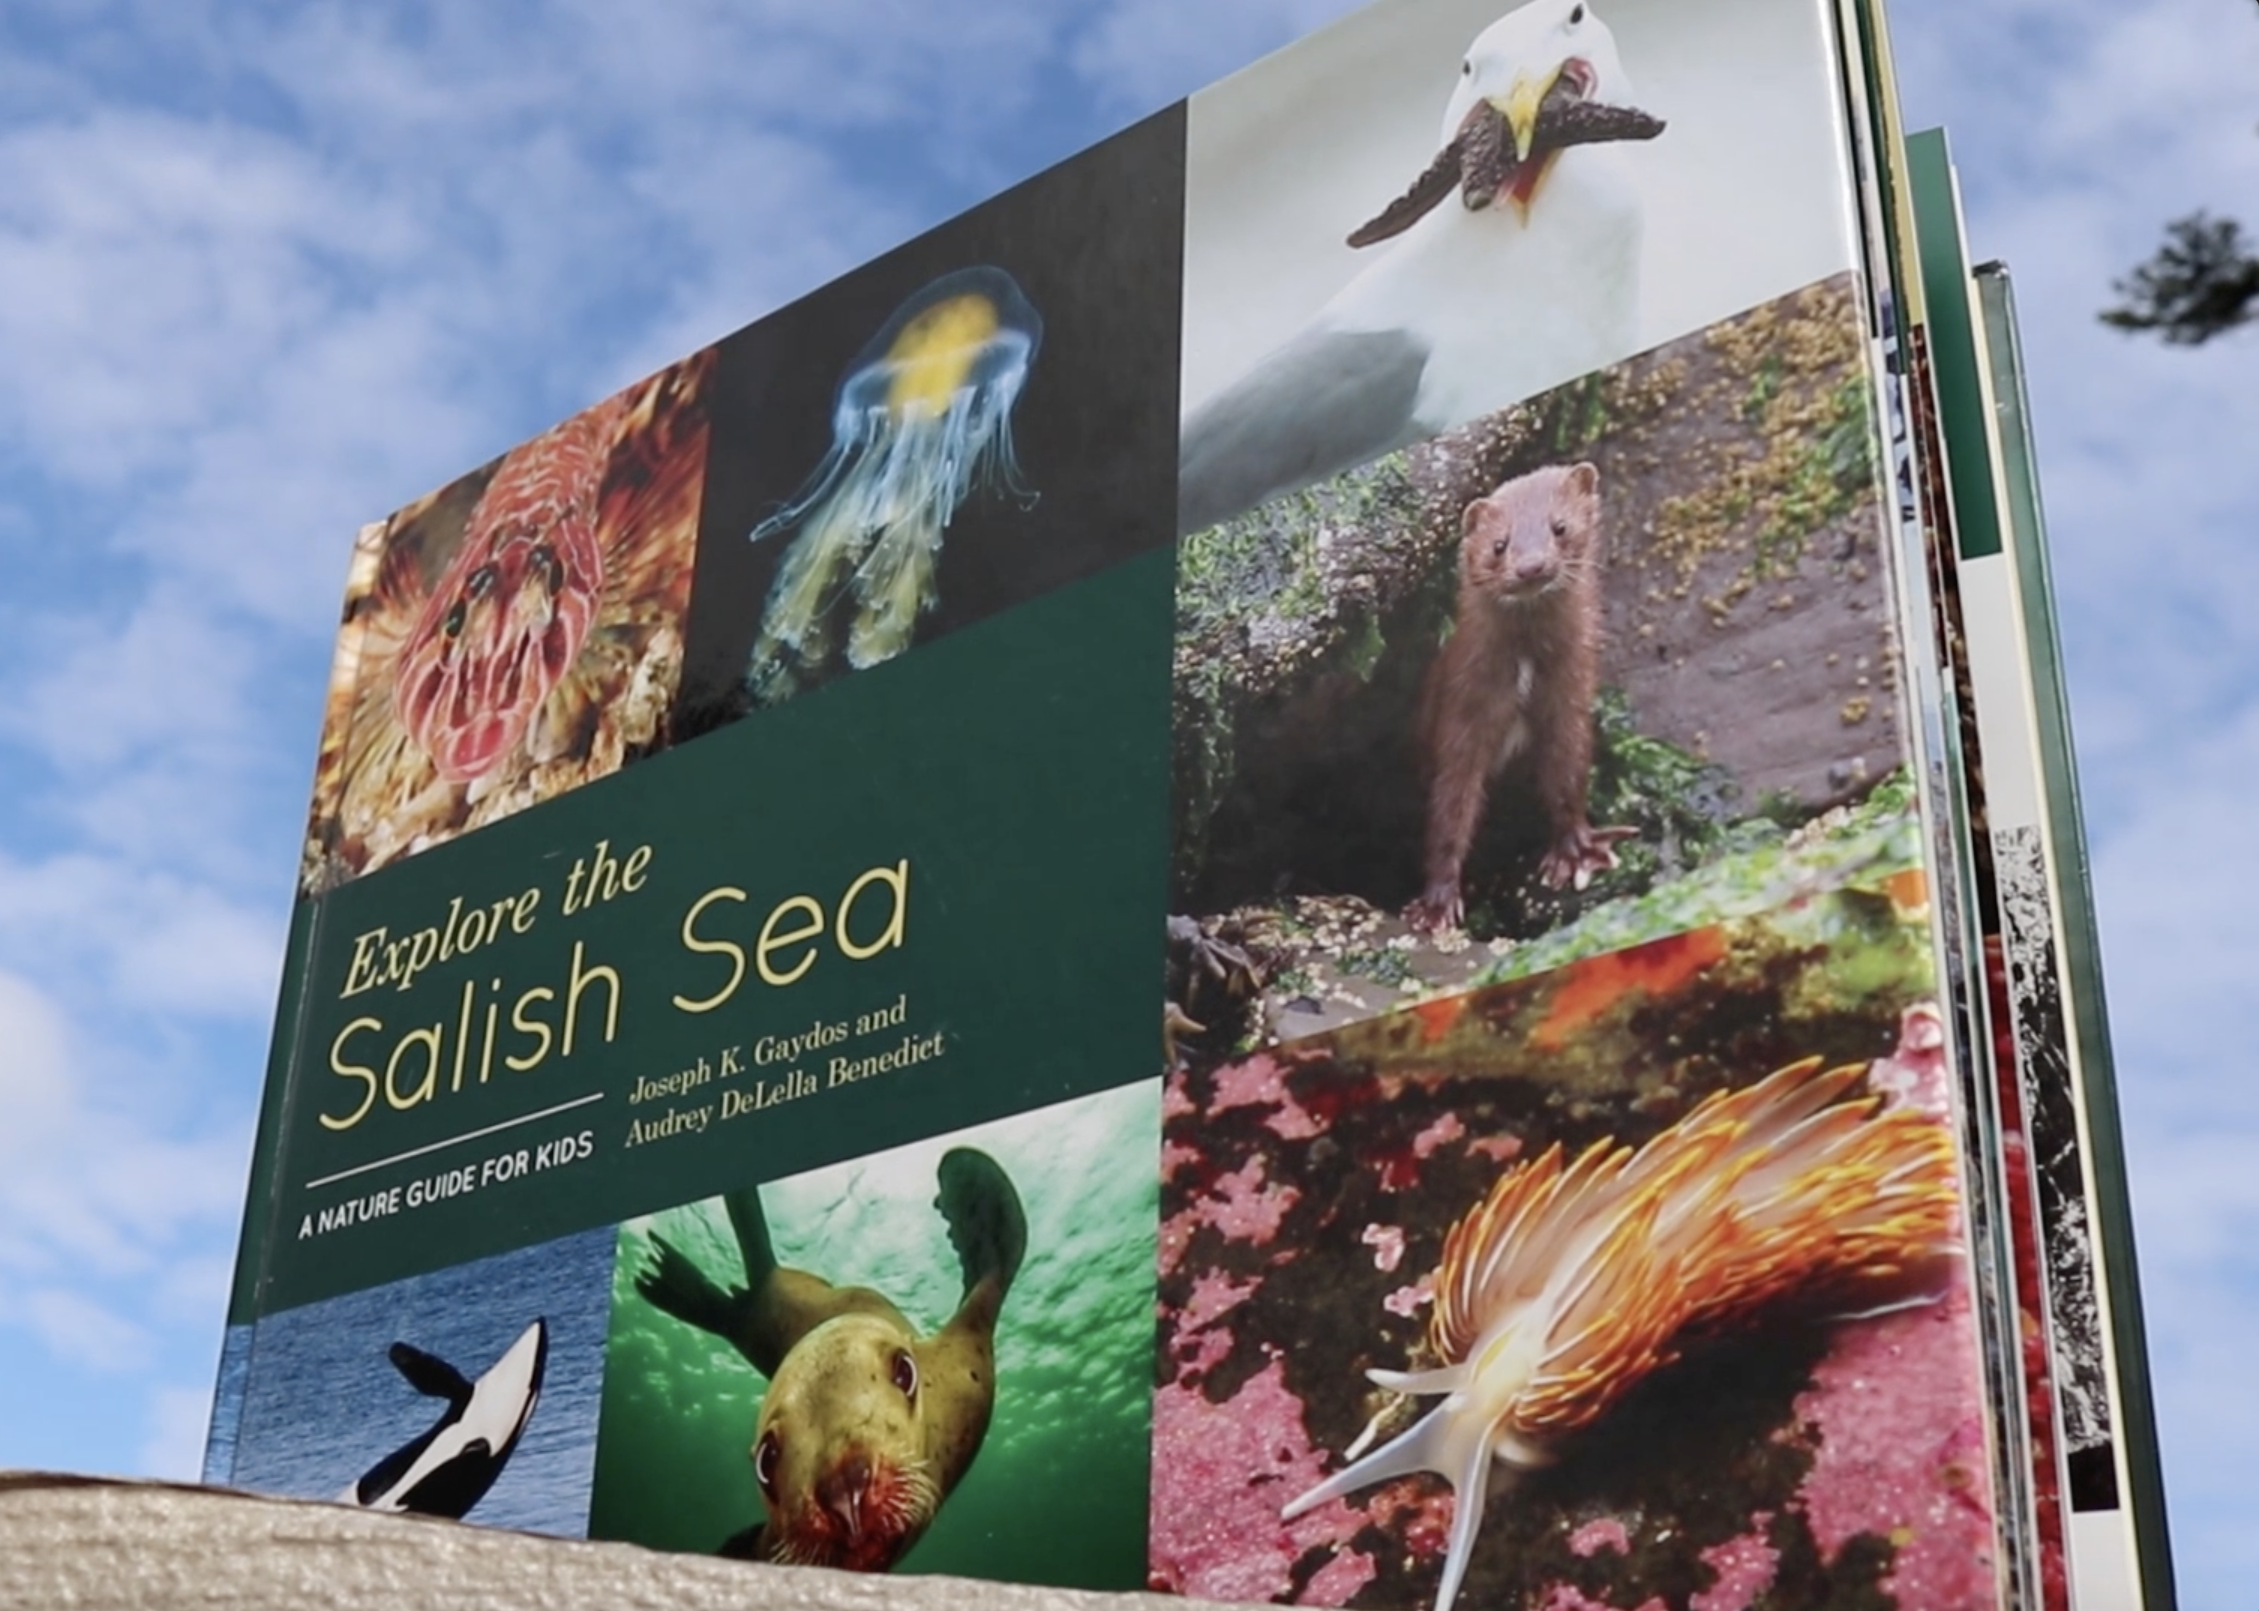 Adventure-filled, NGSS-aligned units to build ocean literacy in your students and communities, based on the Nautilus Award-winning book, Explore the Salish Sea A Nature Guide for Kids.  Find the book here.